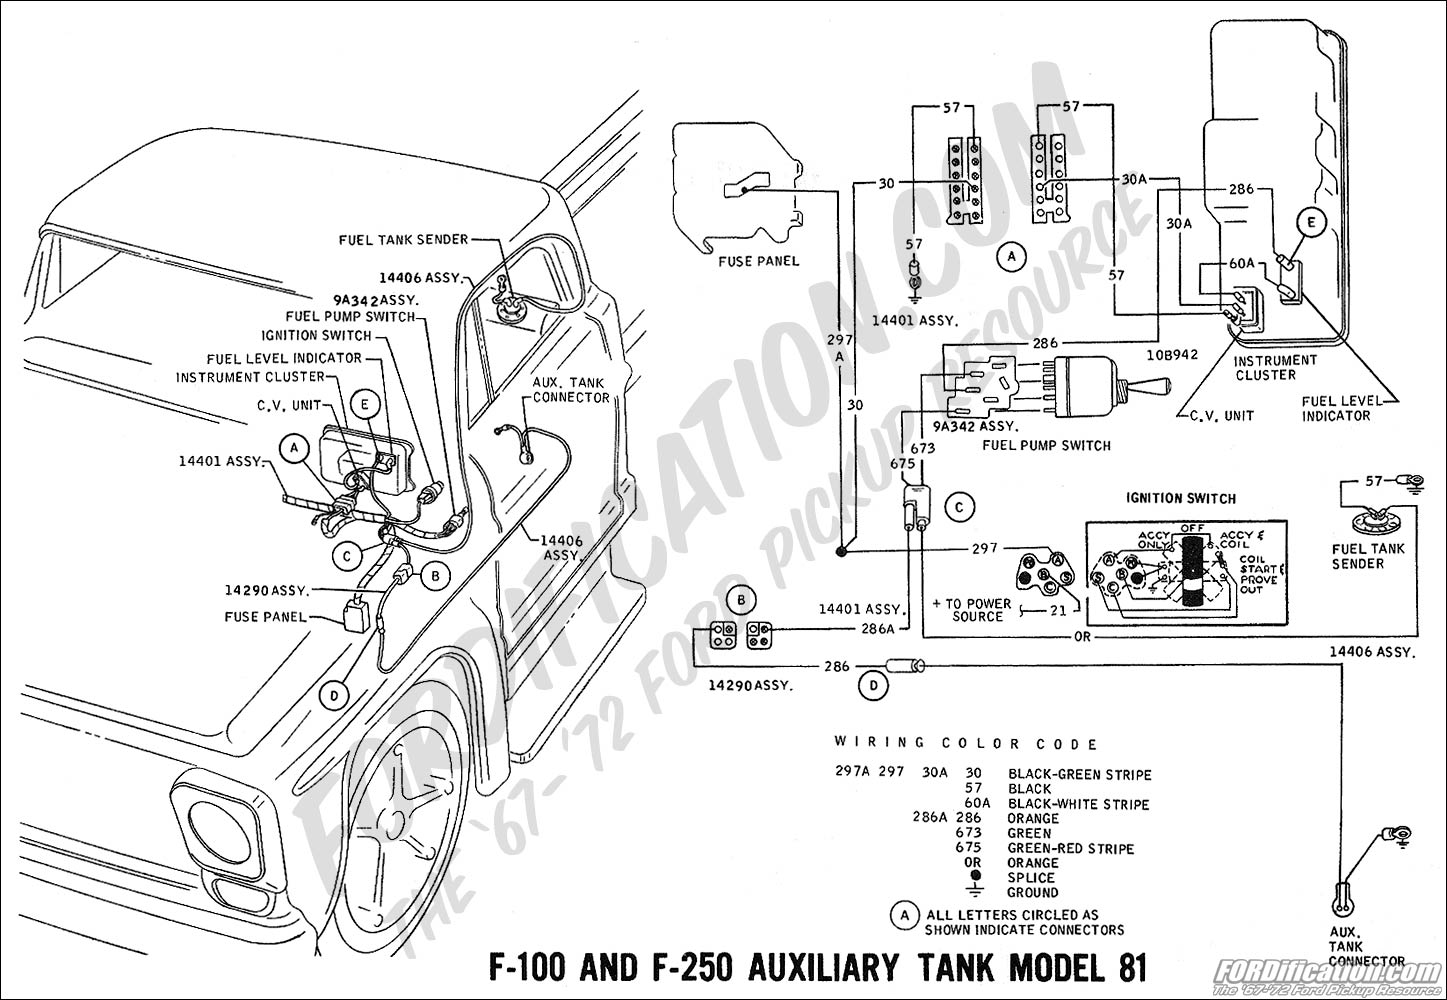 wiring_69aux fuel 69 f100 wiring diagram 1973 ford f100 wiring diagram \u2022 wiring Ford E-350 Fuse Box Diagram at bayanpartner.co